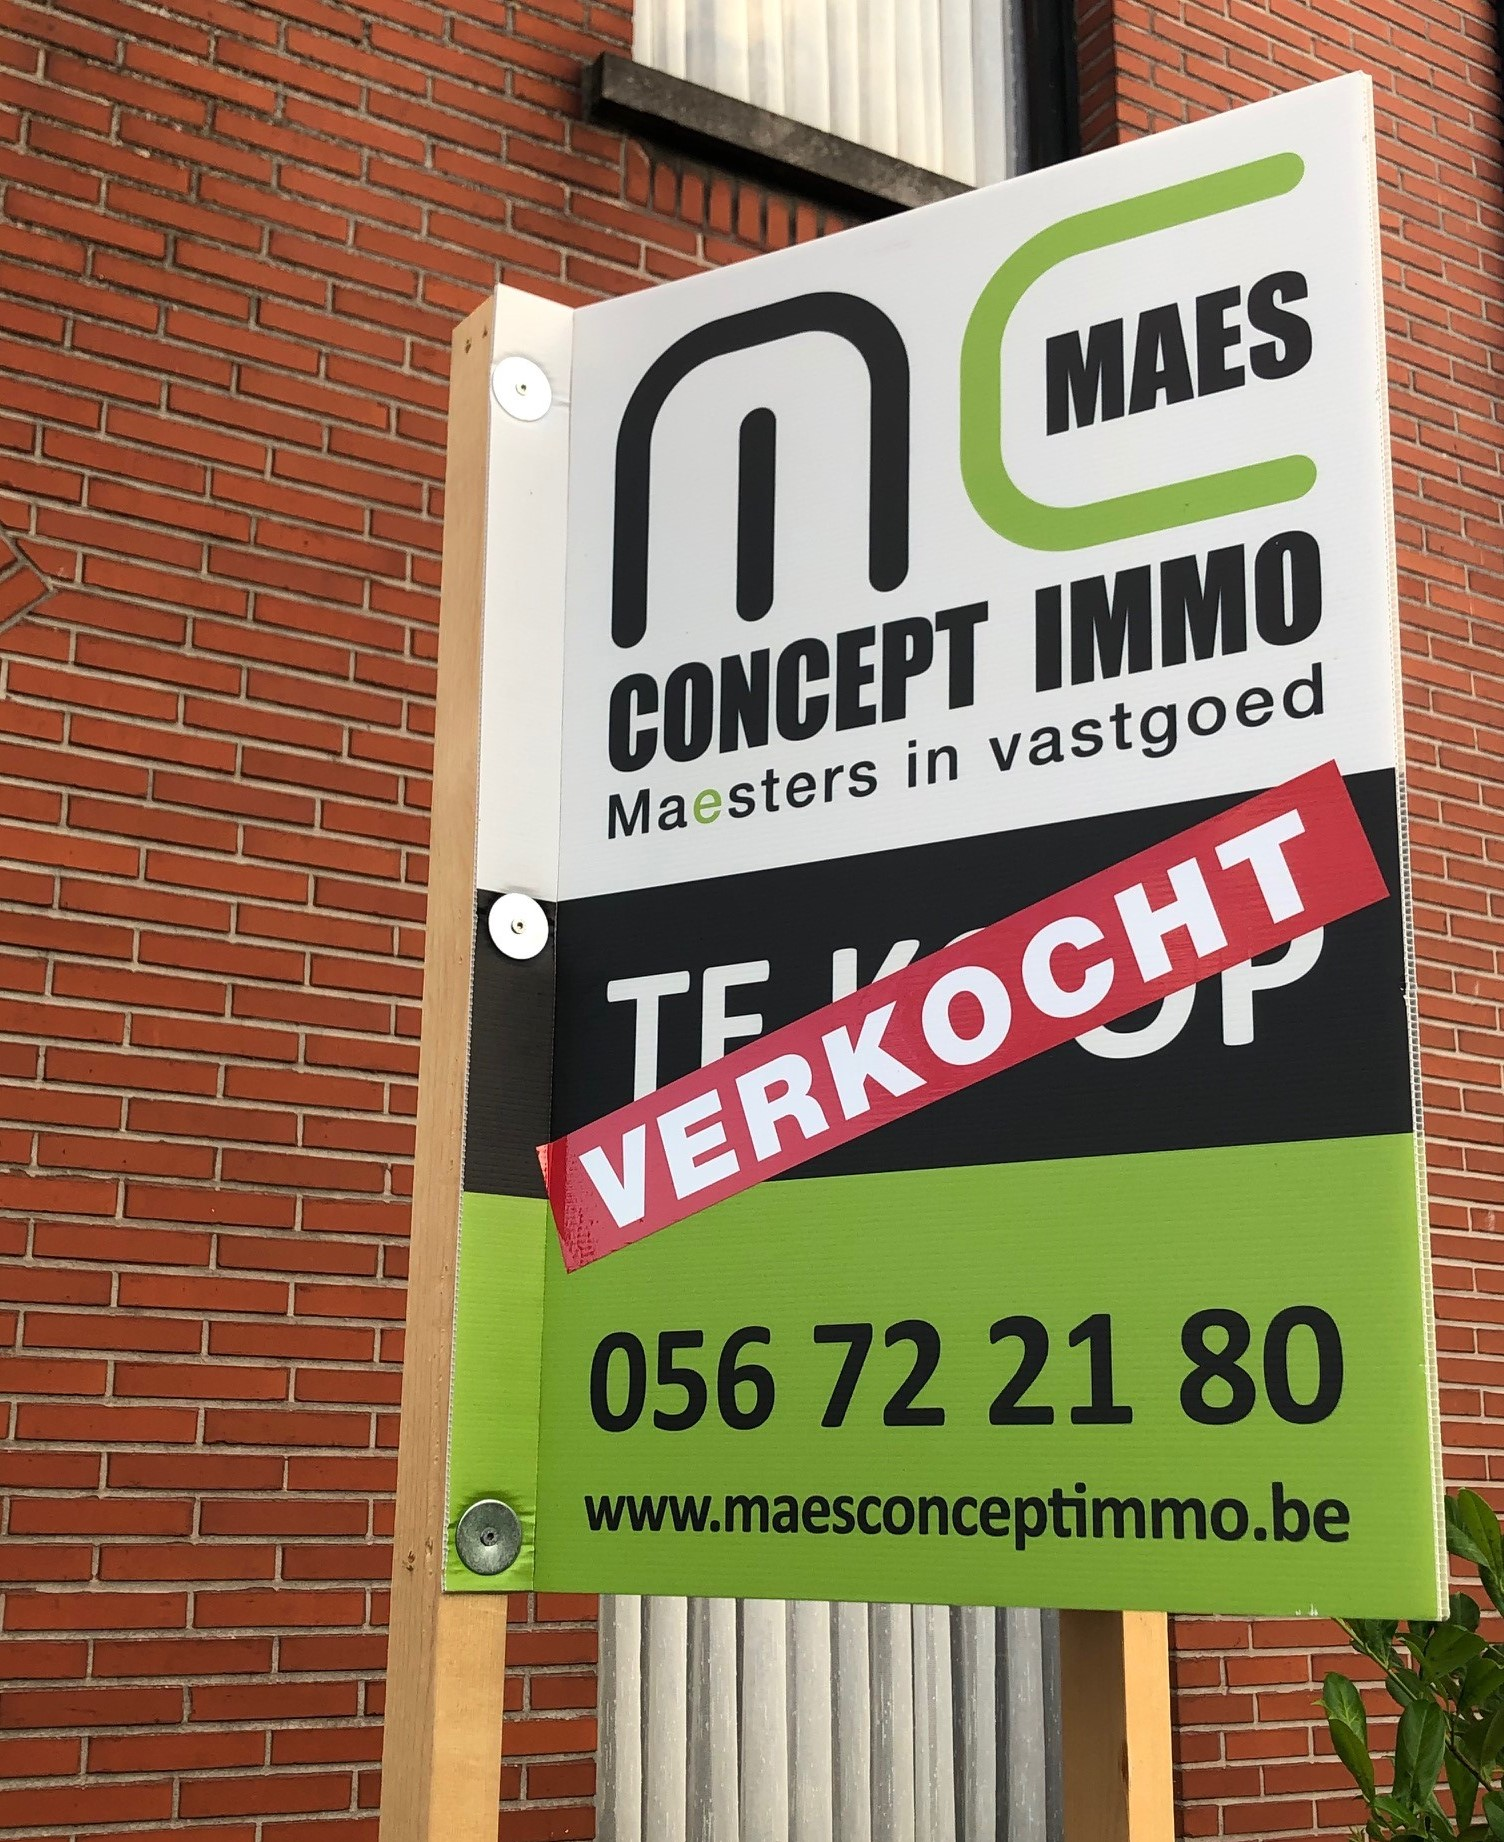 Maes Concept Immo verkopen